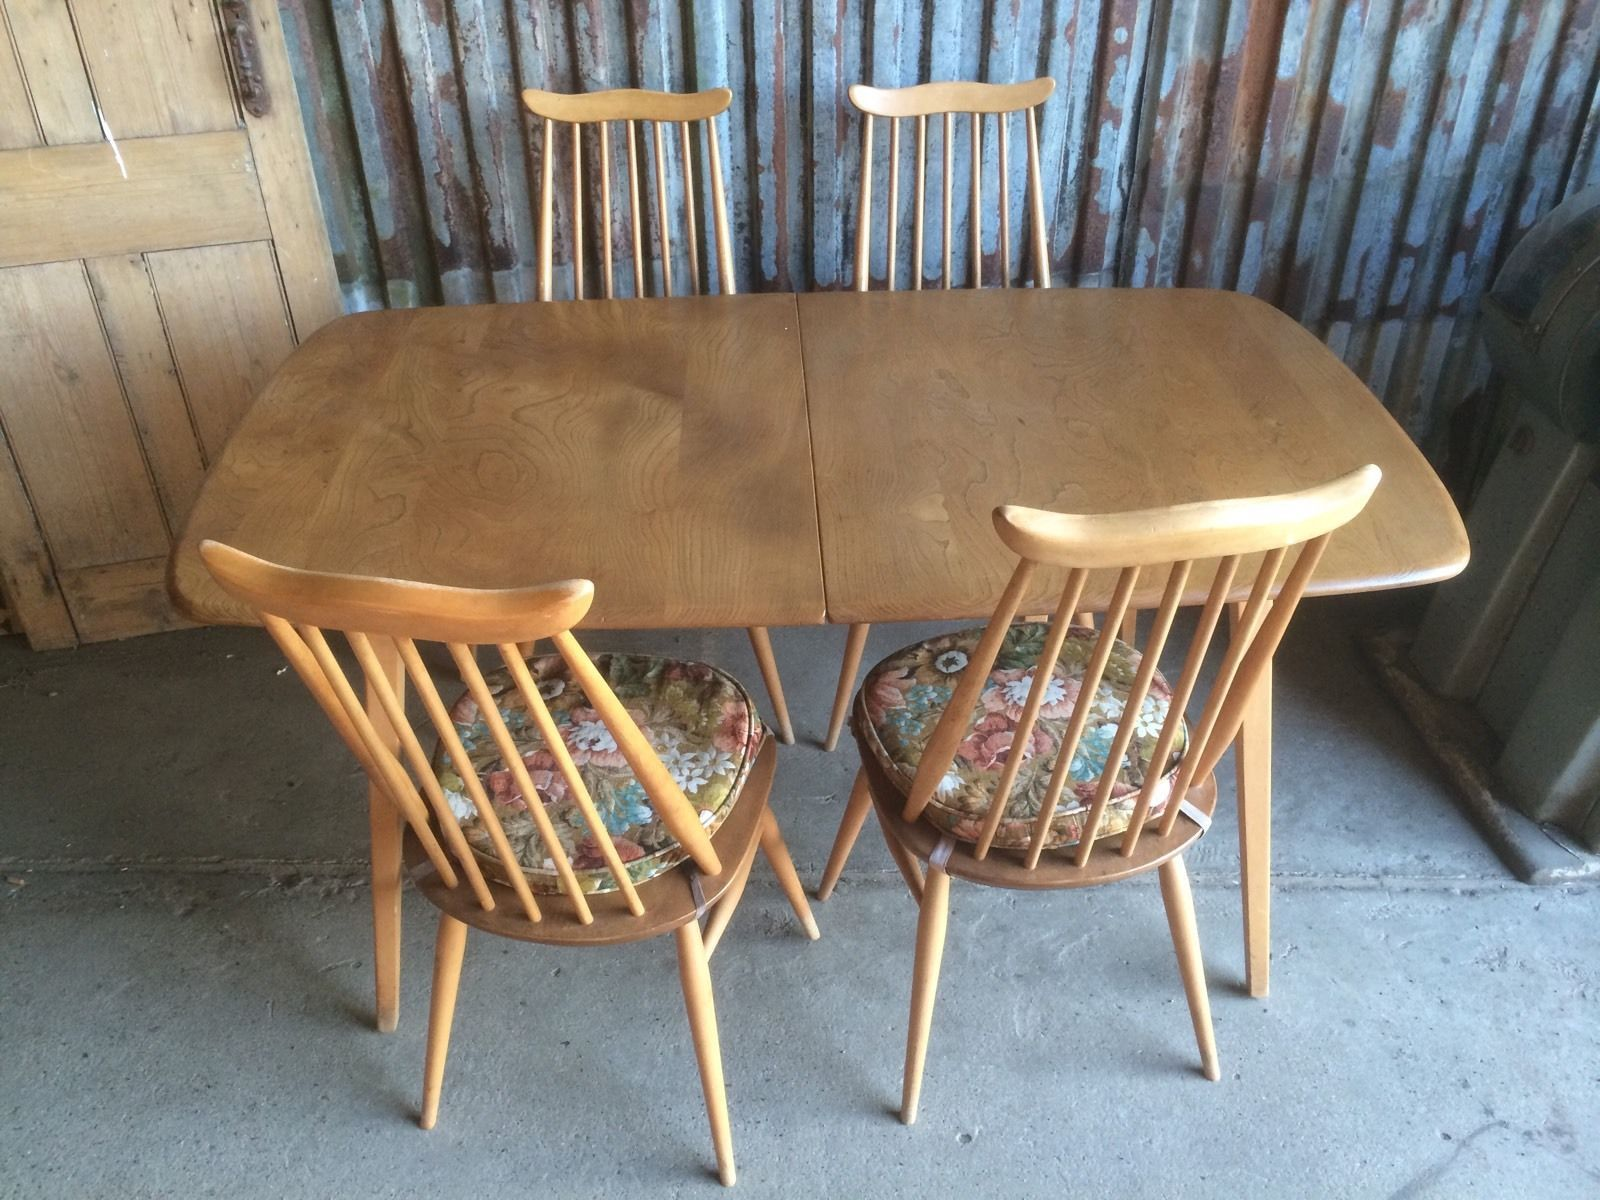 Vintage retro ercol drop leaf round dining kitchen table ebay - Rare 5 Legged Vintage Retro Ercol Grand Extending Plank Table 1960s 4 Chairs Ebay